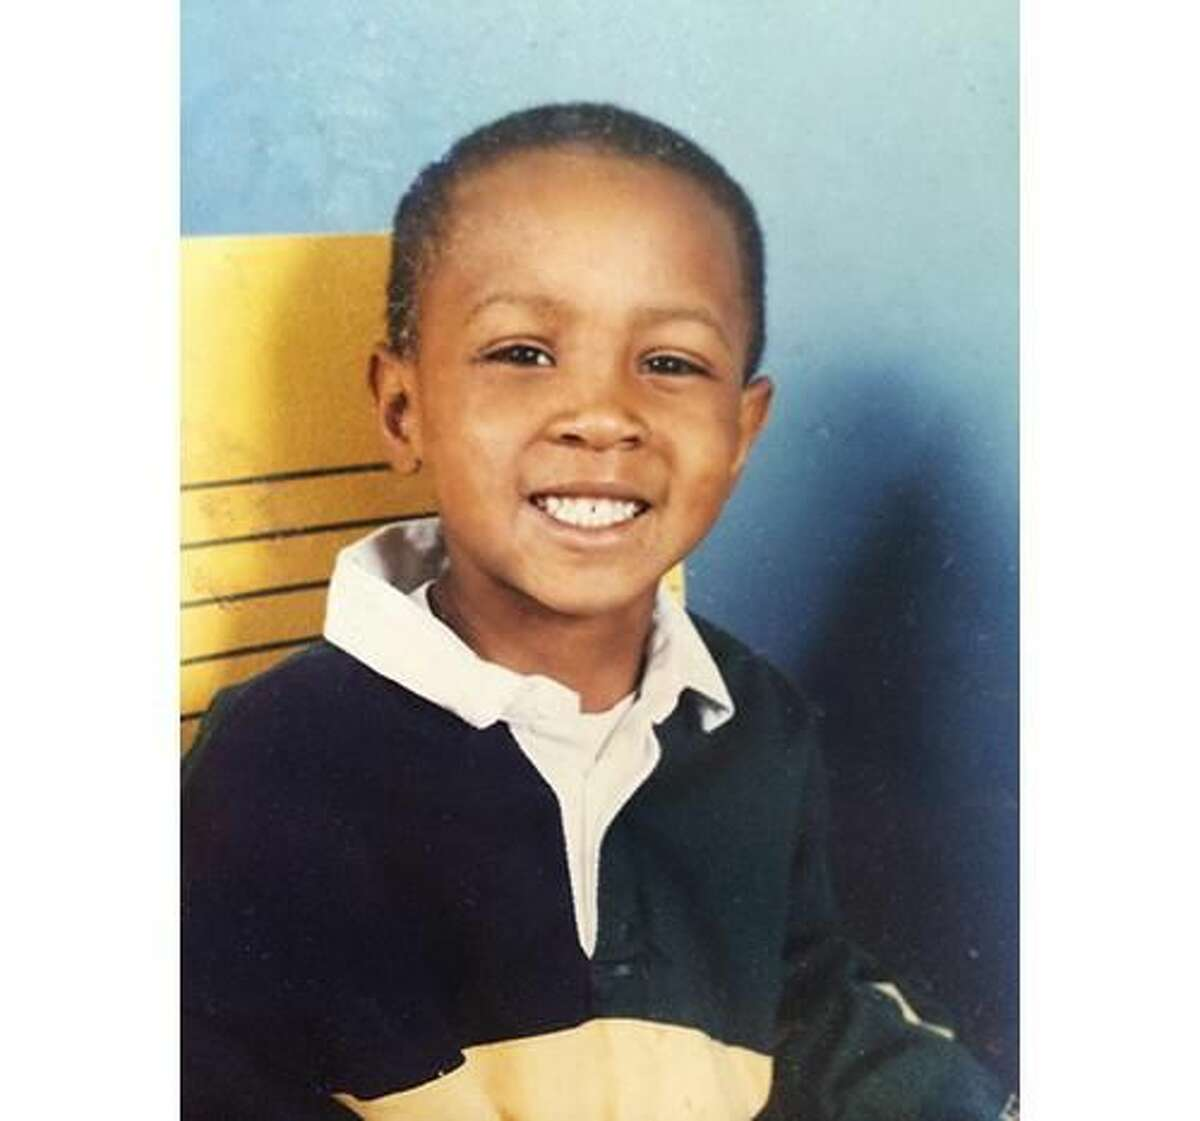 This smiling face grew up to become of the Texans' top offensive weapons ...